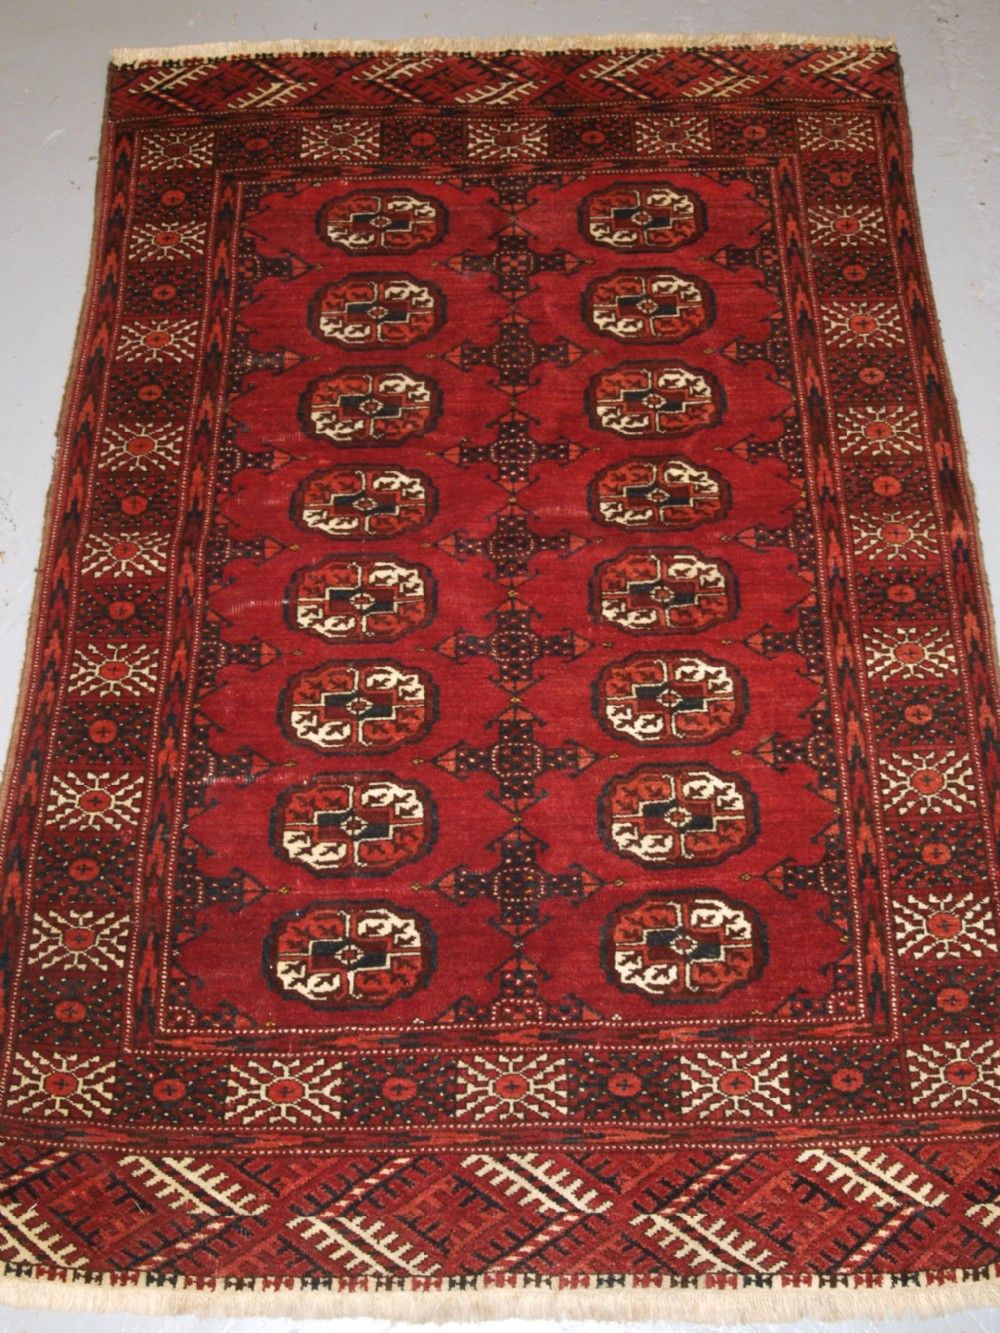 old afghan rug of small size with tekke turkmen design hard wearing circa 1920